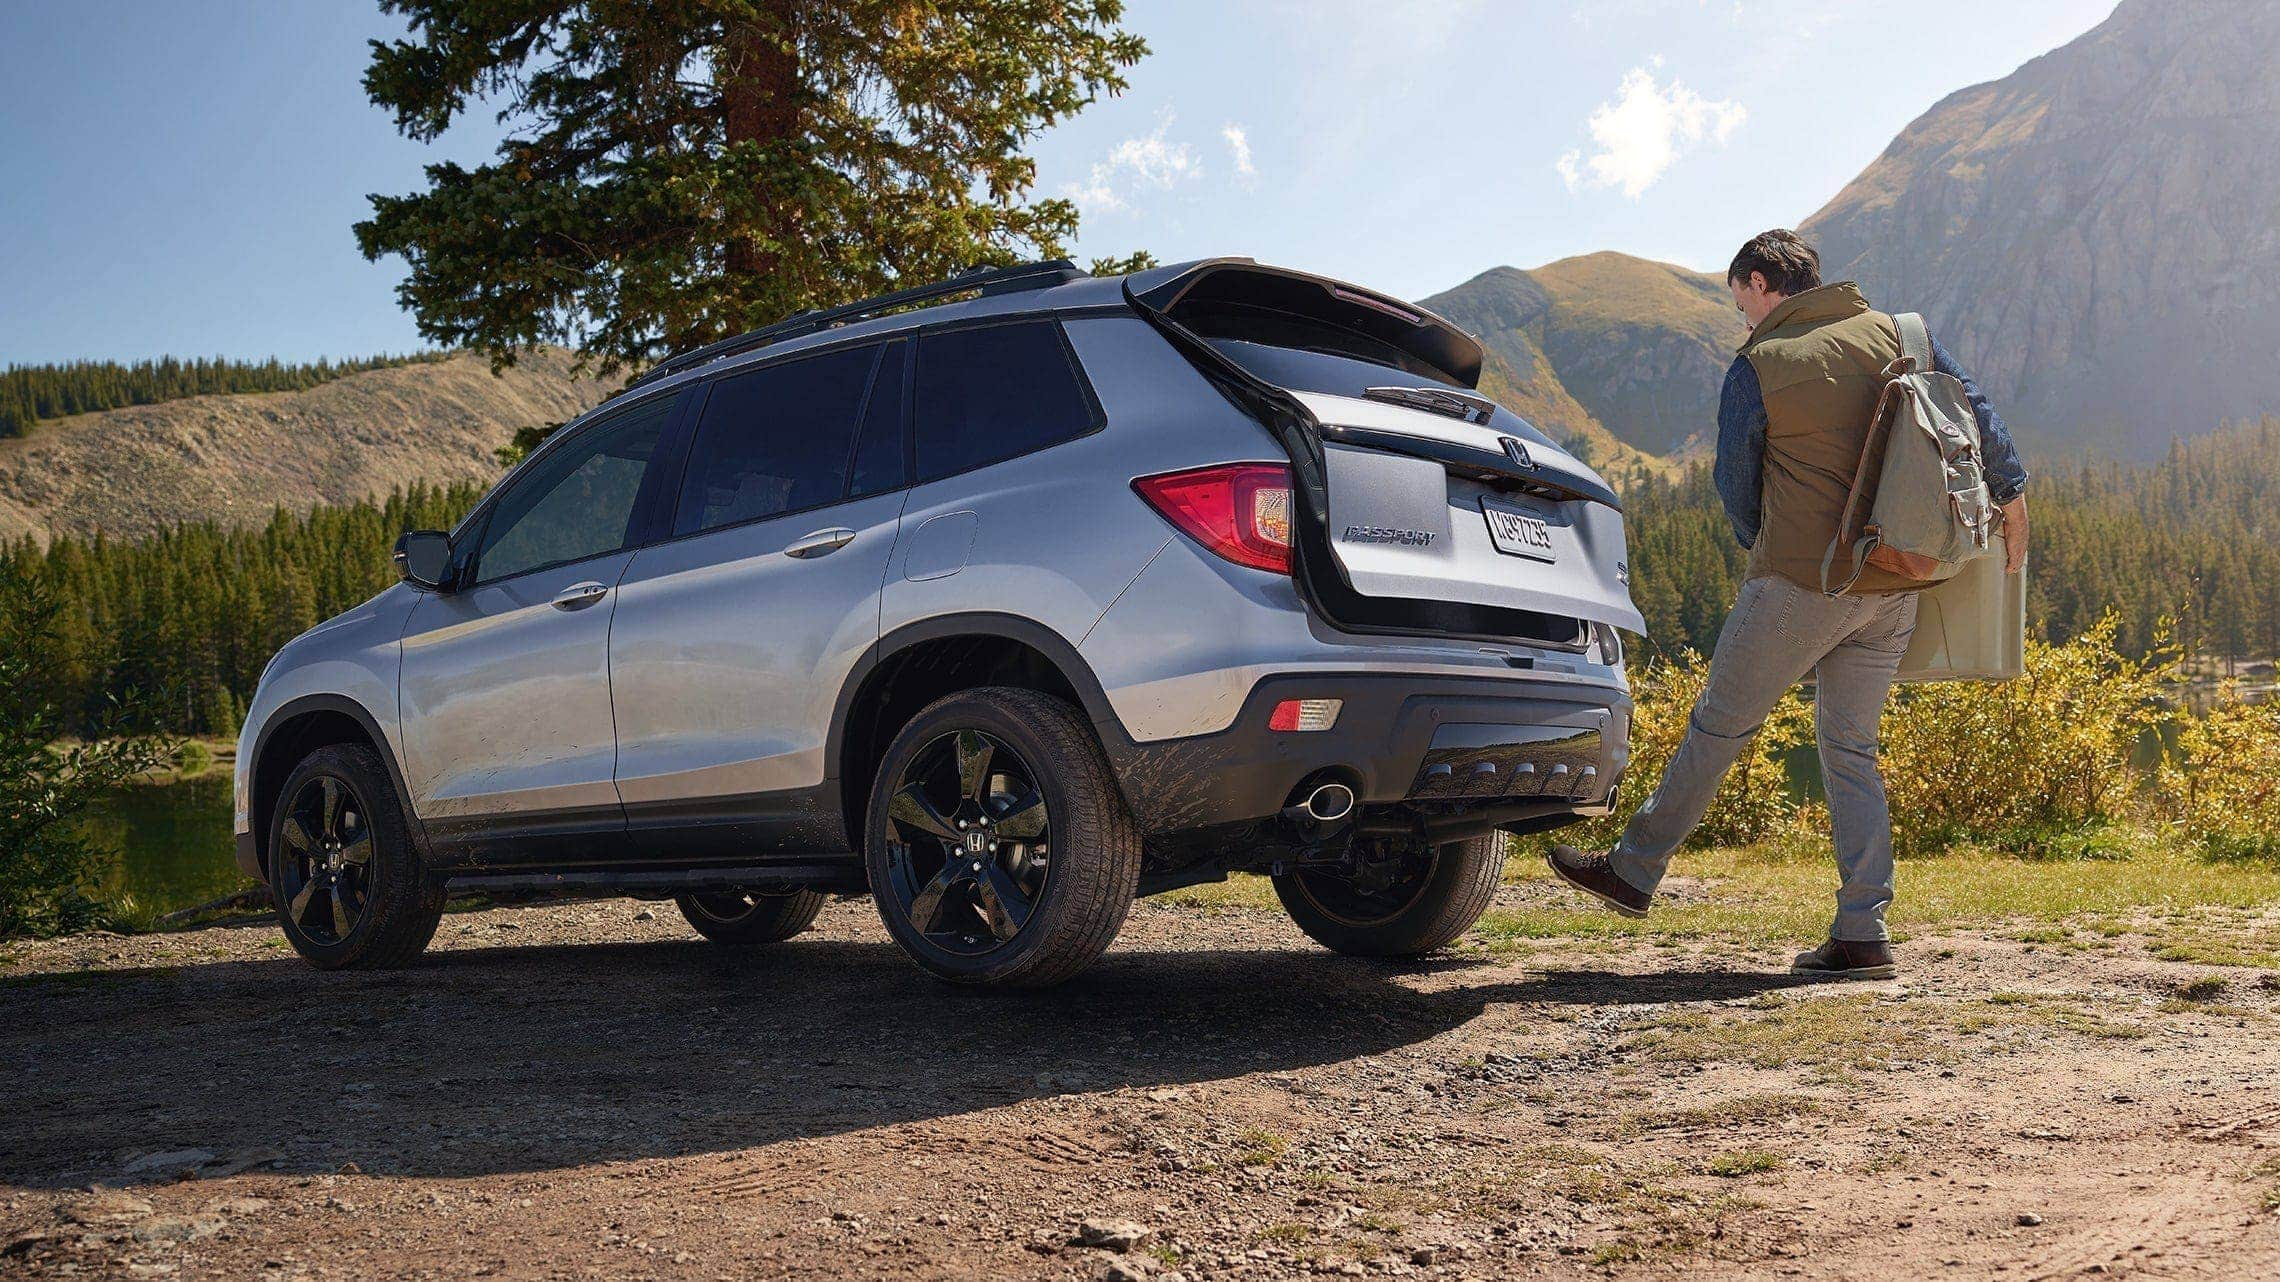 Driver-side rear 3/4 view of 2019 Honda Passport Elite in Lunar Silver Metallic, parked at campsite and demonstrating the hands-free access power tailgate feature.